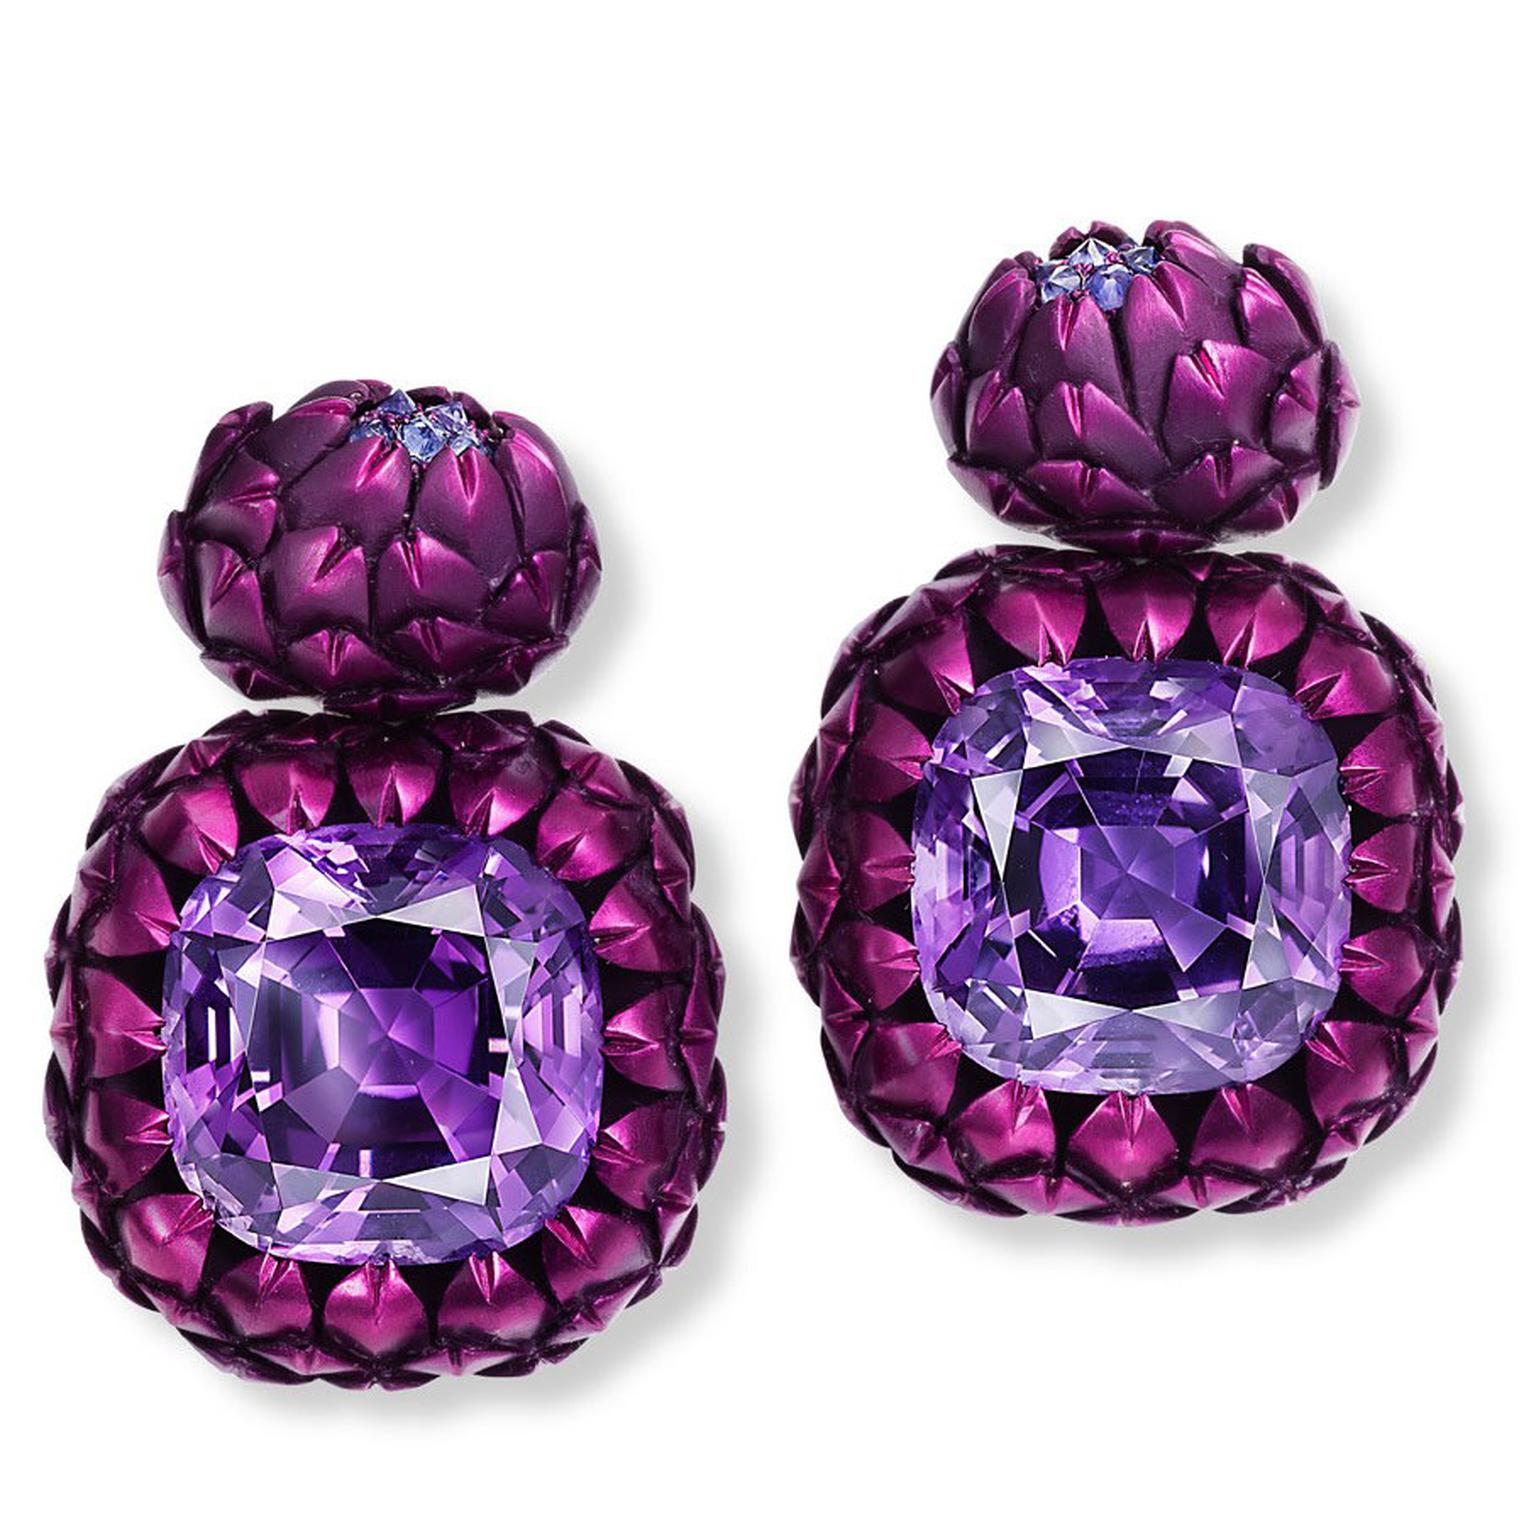 Hemmerle artichoke amethyst and sapphire aluminium earrings